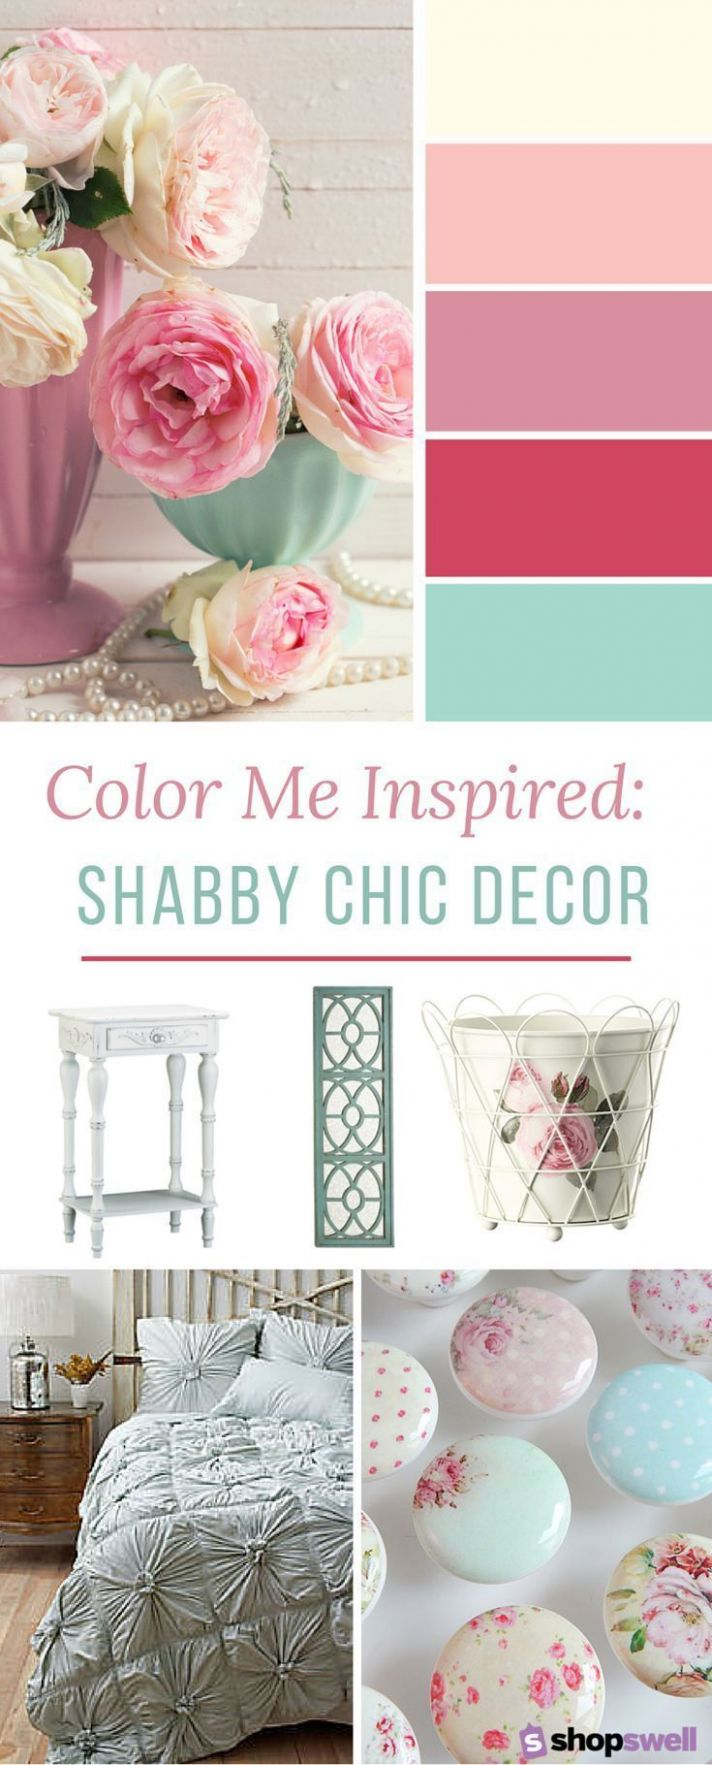 10 Home Decor Essentials for the Shabby Chic Bedroom in 1010 ..